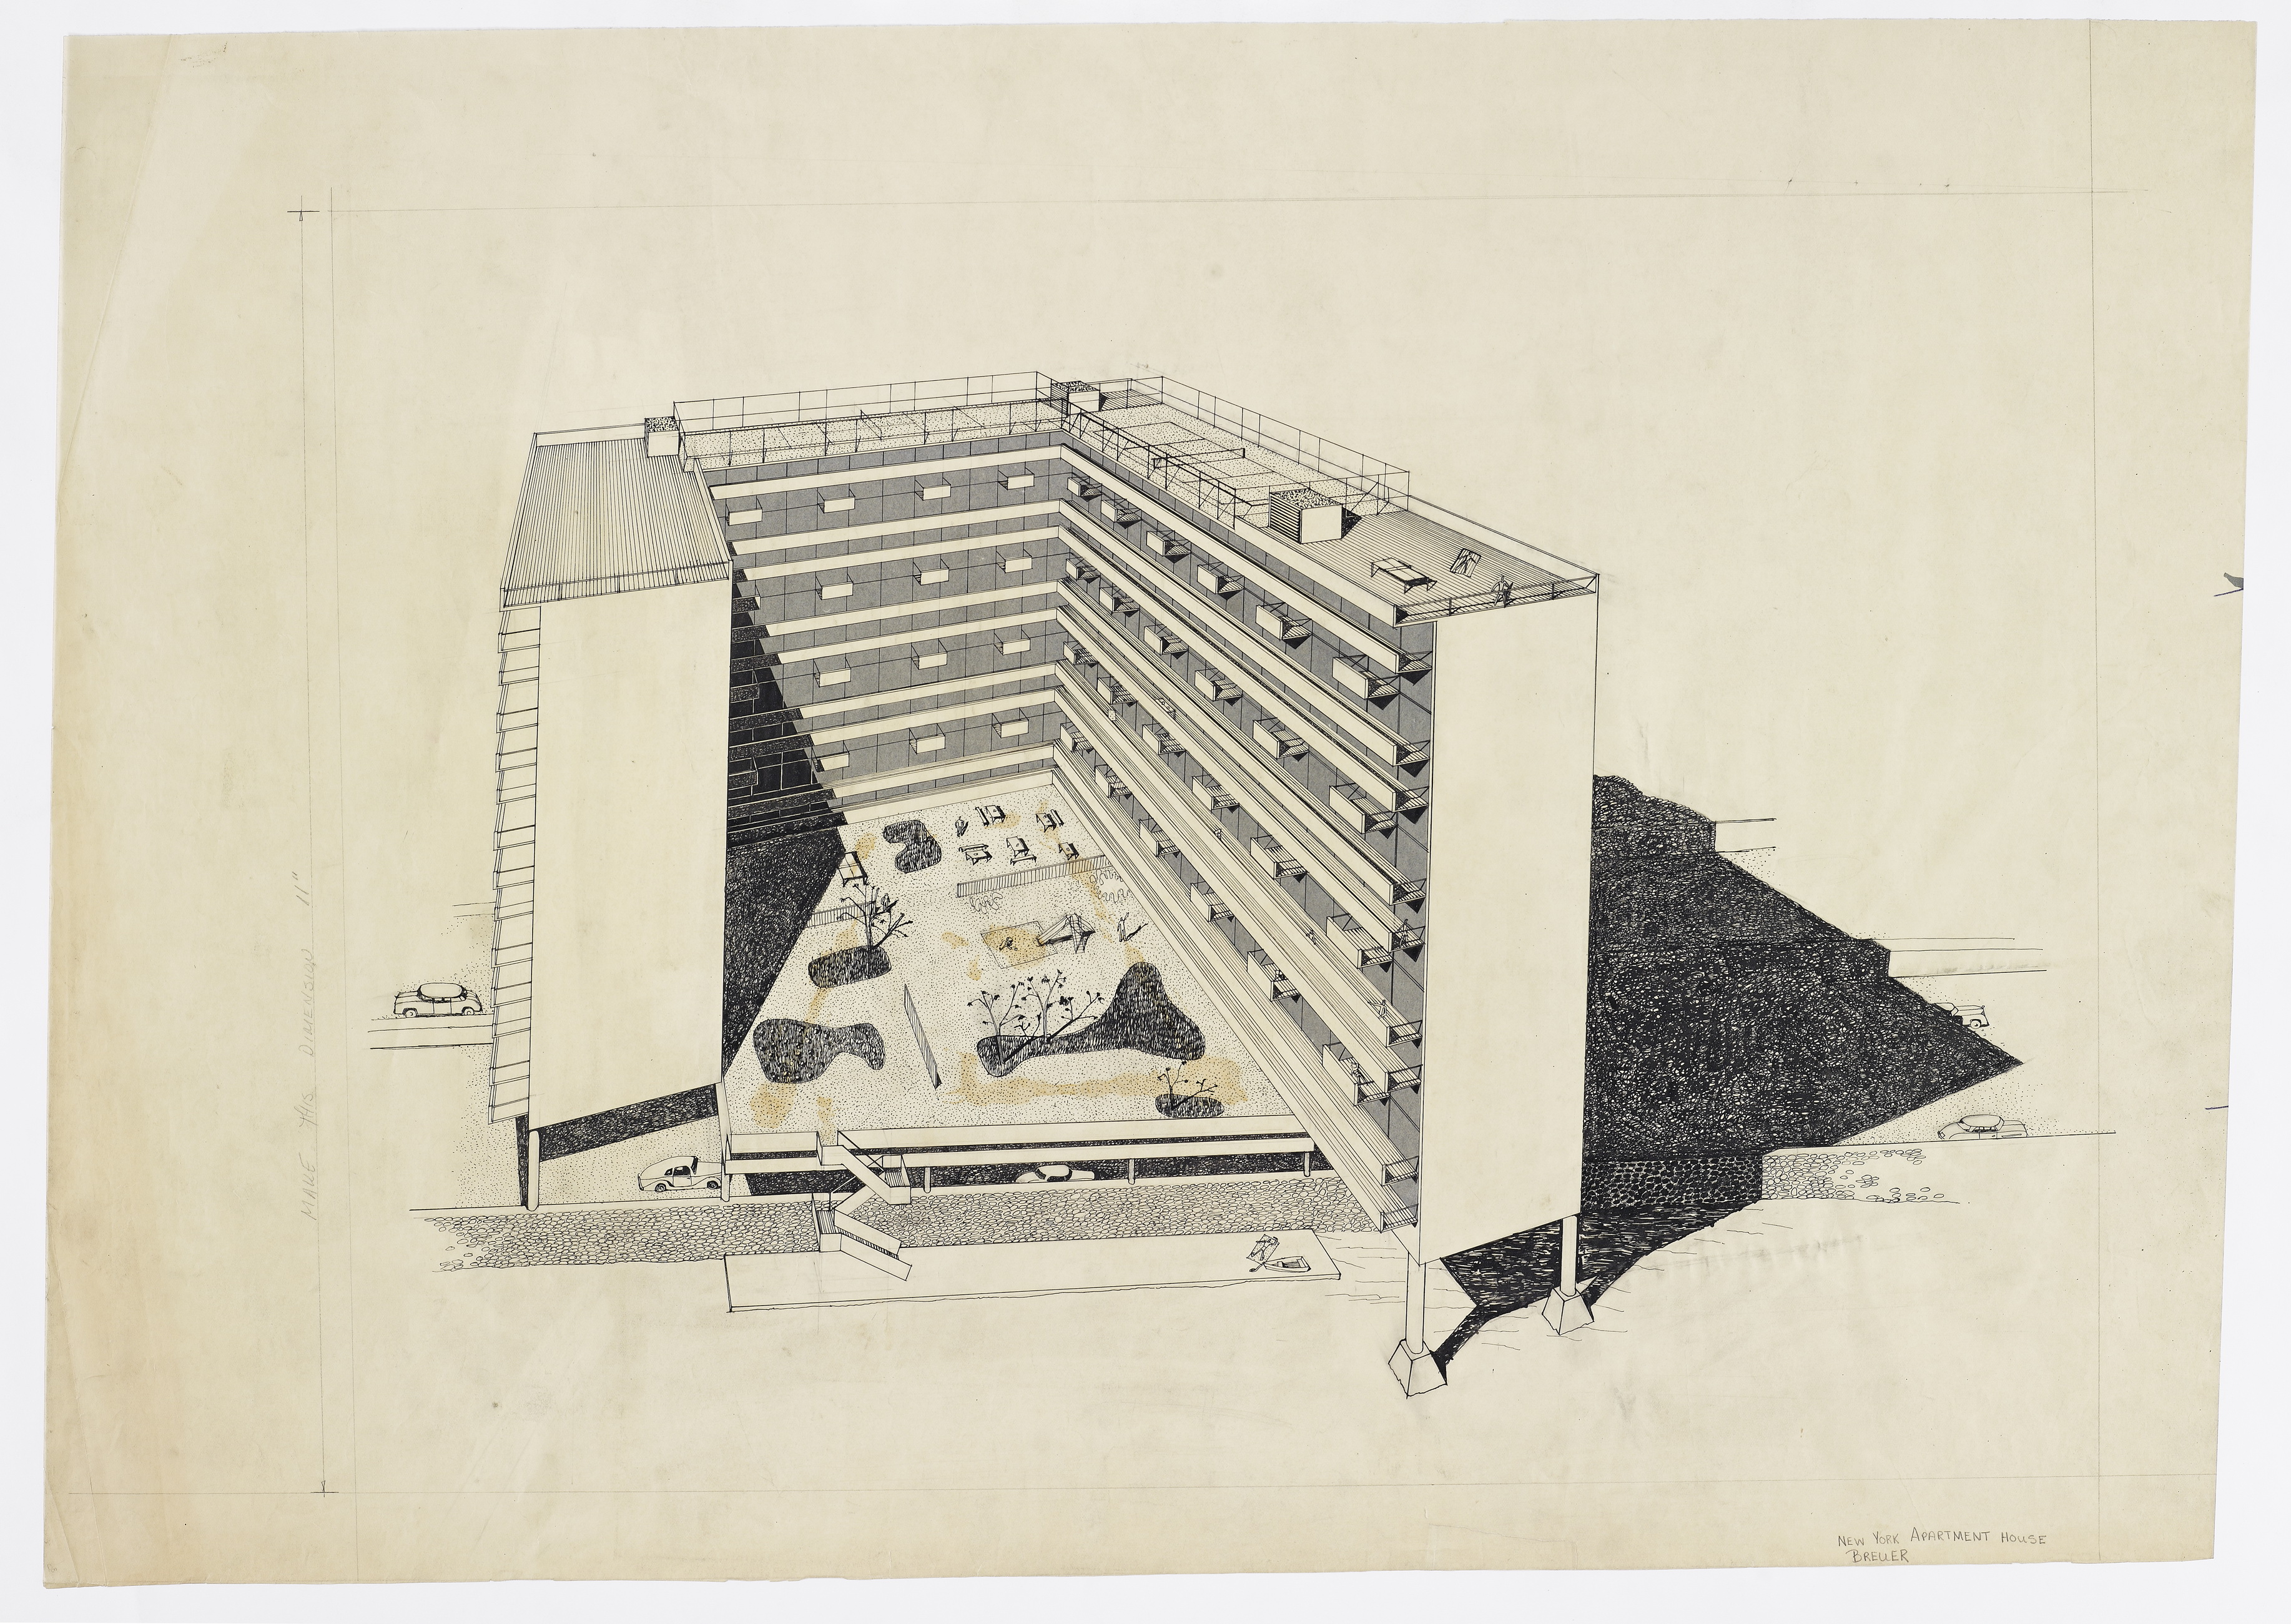 Chase brass and copper company addition turner construction company - Apartment House New York Project Type Residential Years 1945 1945